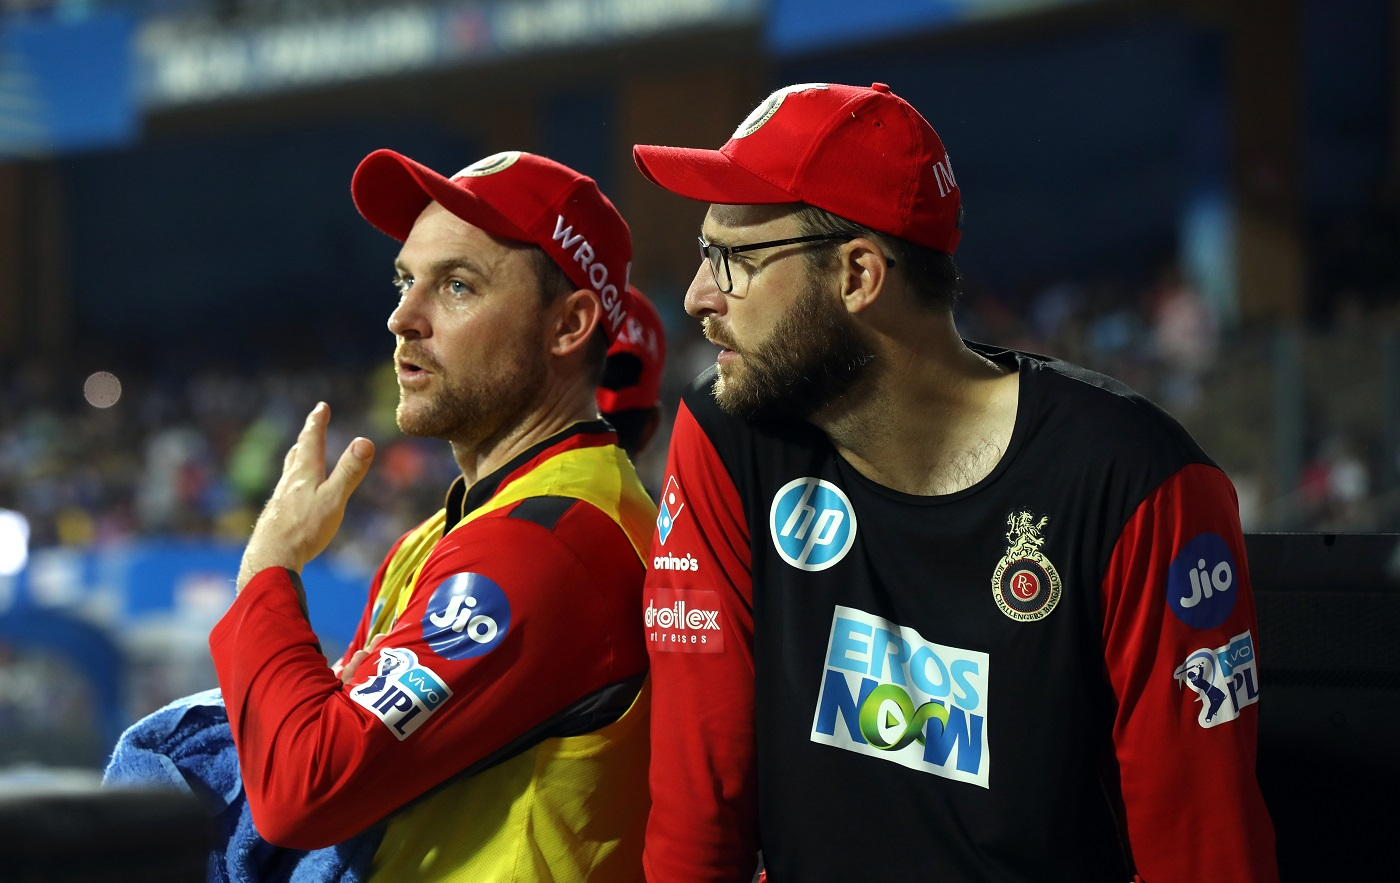 Daniel Vettori (right) is a sought-after coach in T20 leagues around the world, although his win-loss record isn't very impressive